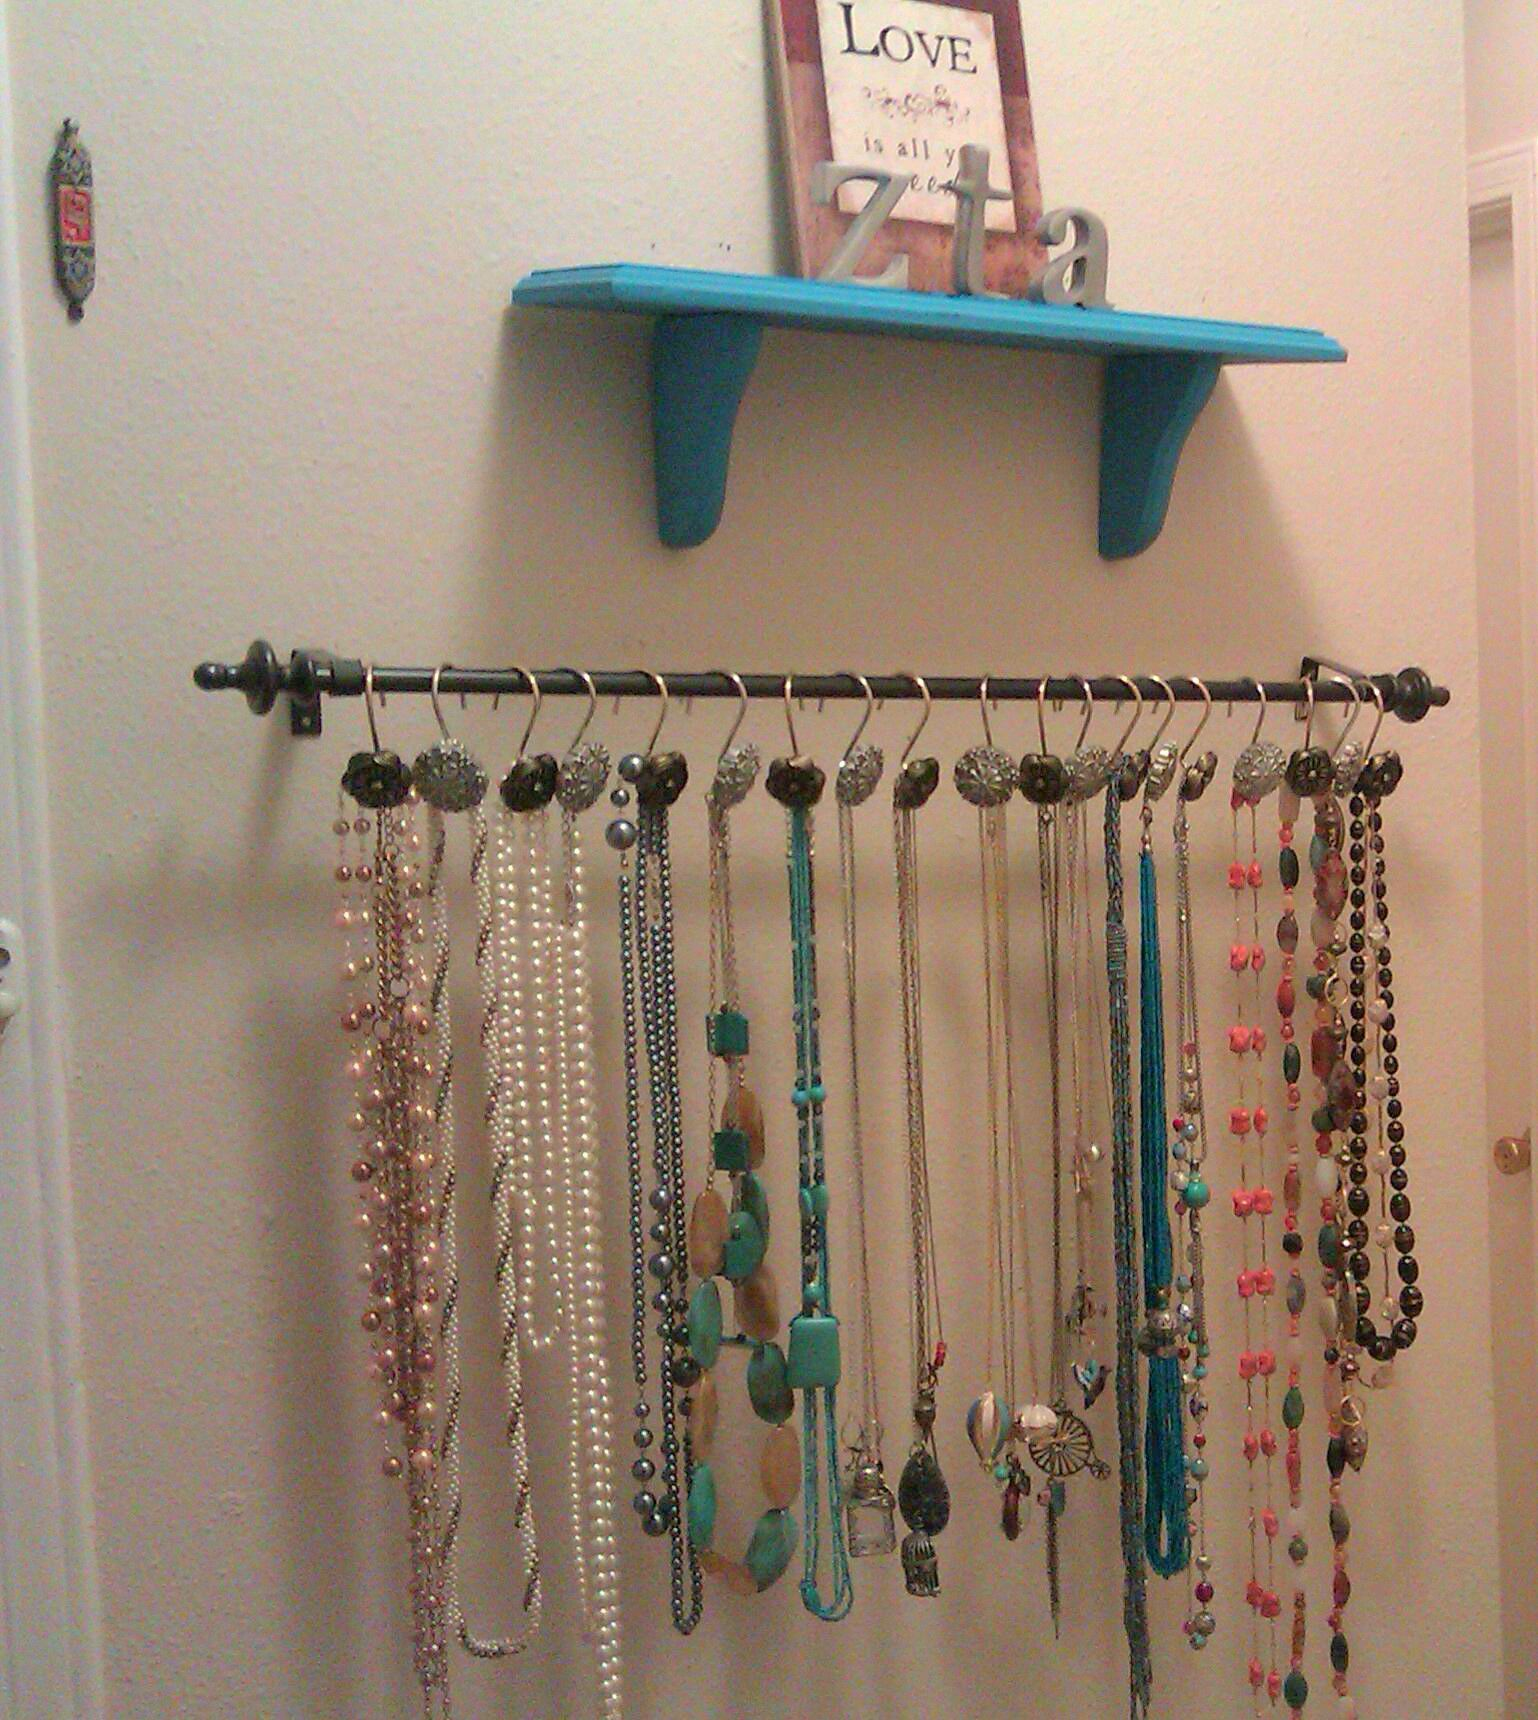 Diy necklace hanger i bought a curtain rod and intricate